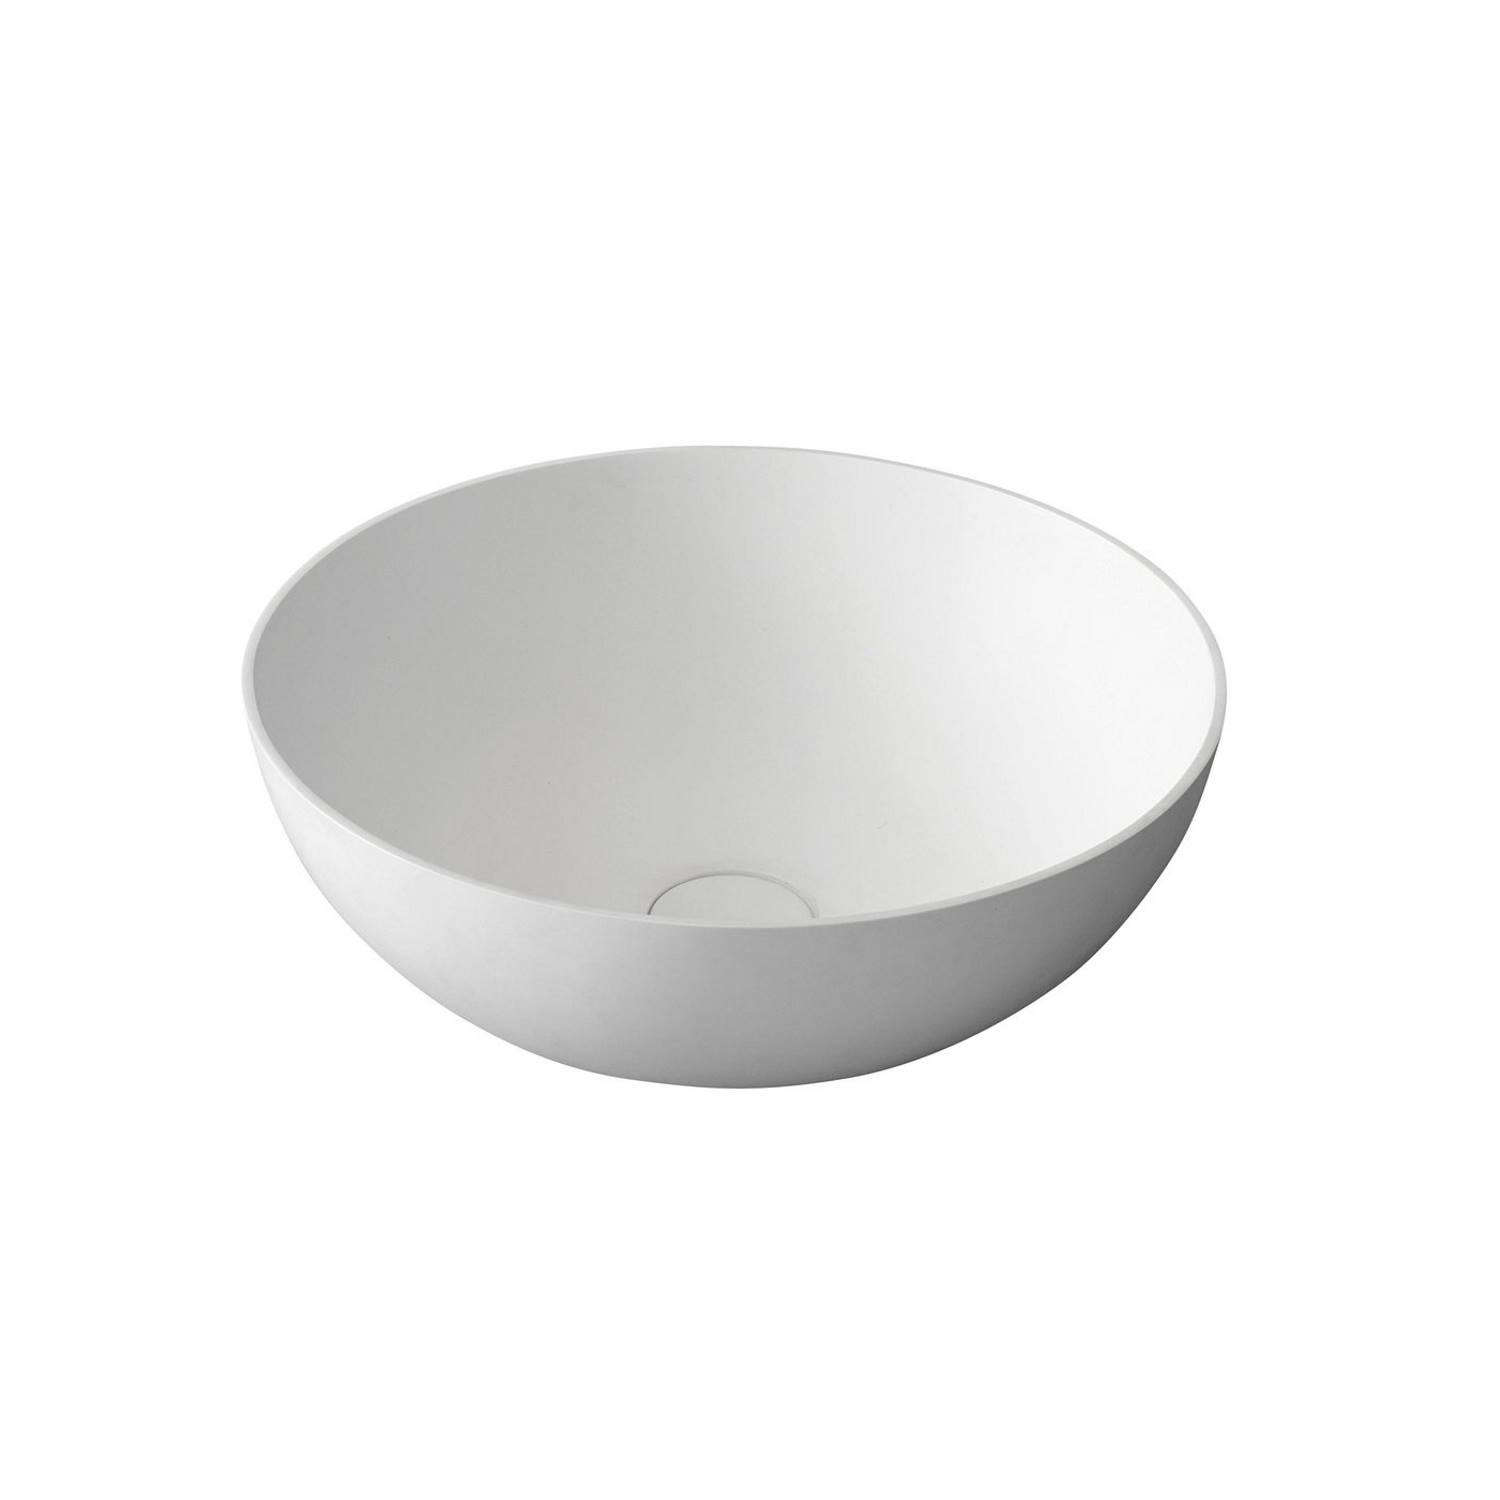 Waskom Sapho Thin Rond 39x14.5 cm Solid Surface Wit Sapho